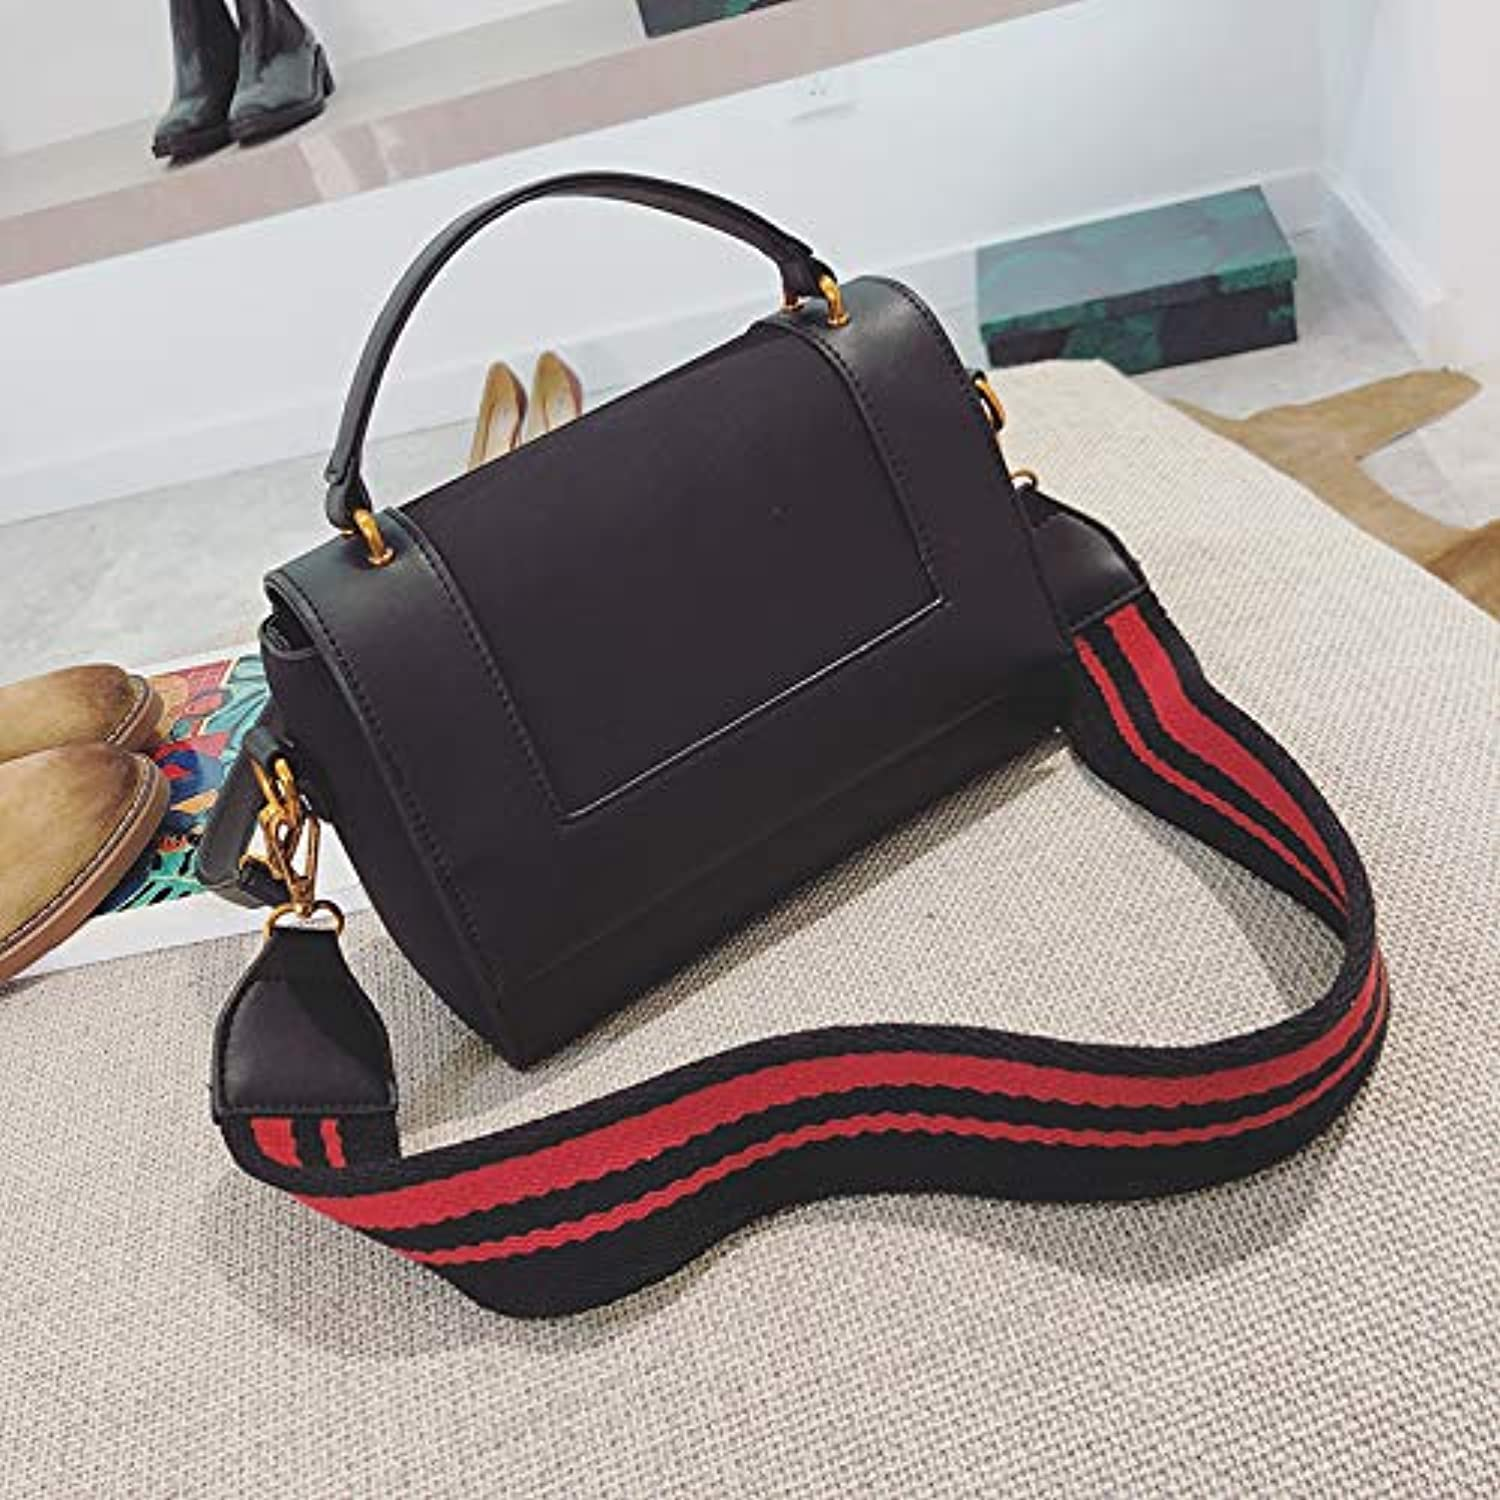 WANGZHAO Small Square Bag, Wide Shoulder Strap, Shoulder Bag Handbag, Women's Bag, Fashion, Fashion, Handbag, Satchel Bag.